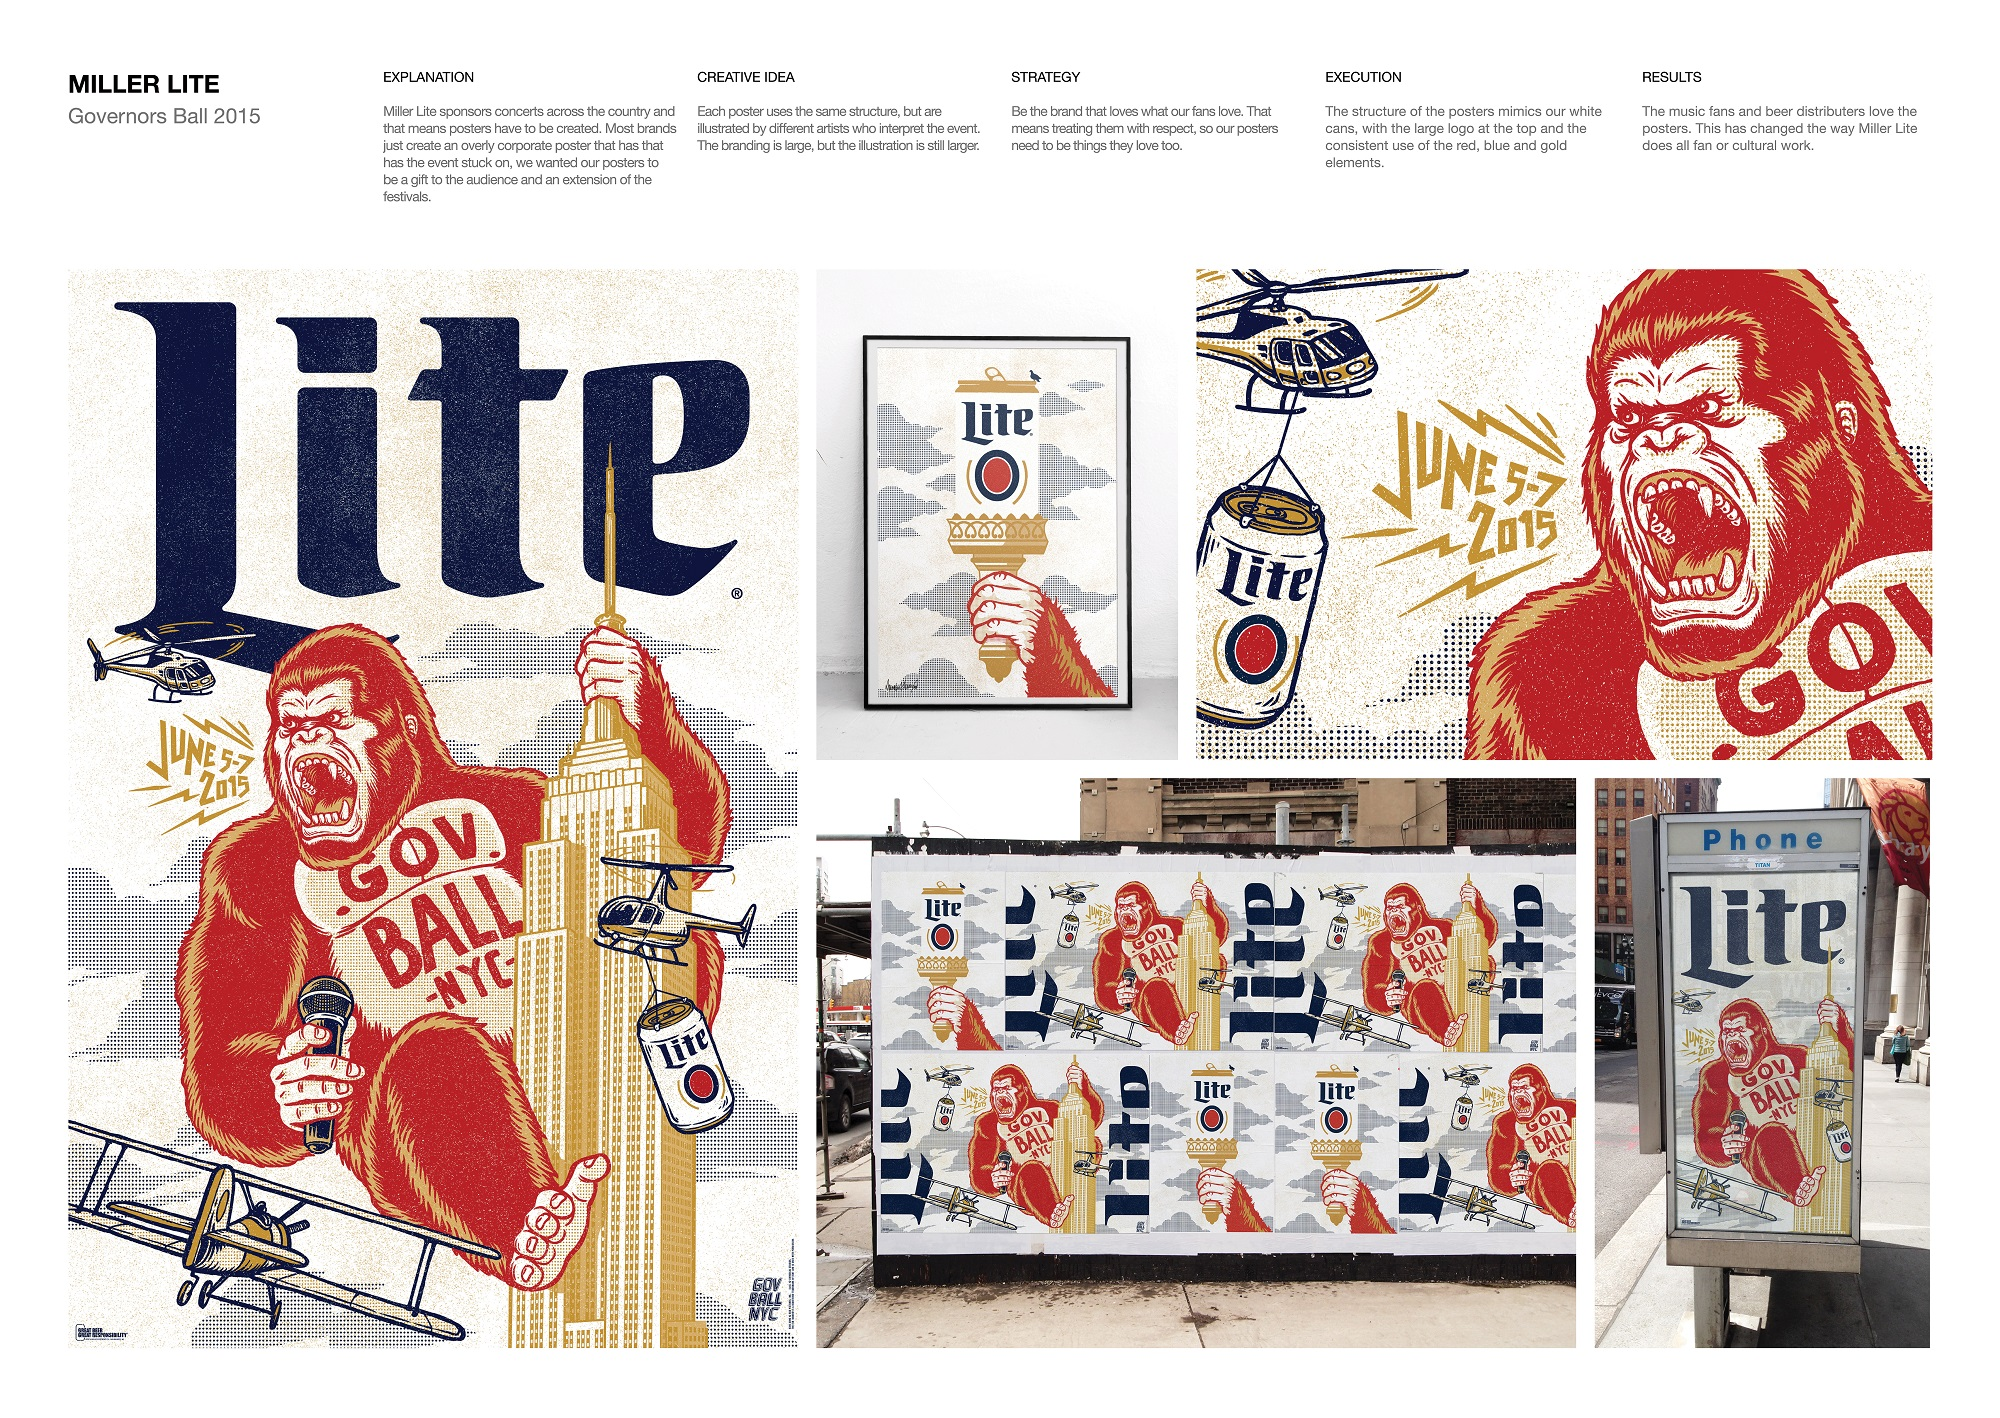 To promote Miller Lite's sponsorship of the Governors Ball, Juniper Park\TBWA created a bevy of posters featuring a King Kong-type character, tasking different artists with interpreting the event. The result was a unified, but compelling artistic approach to the annual soiree.